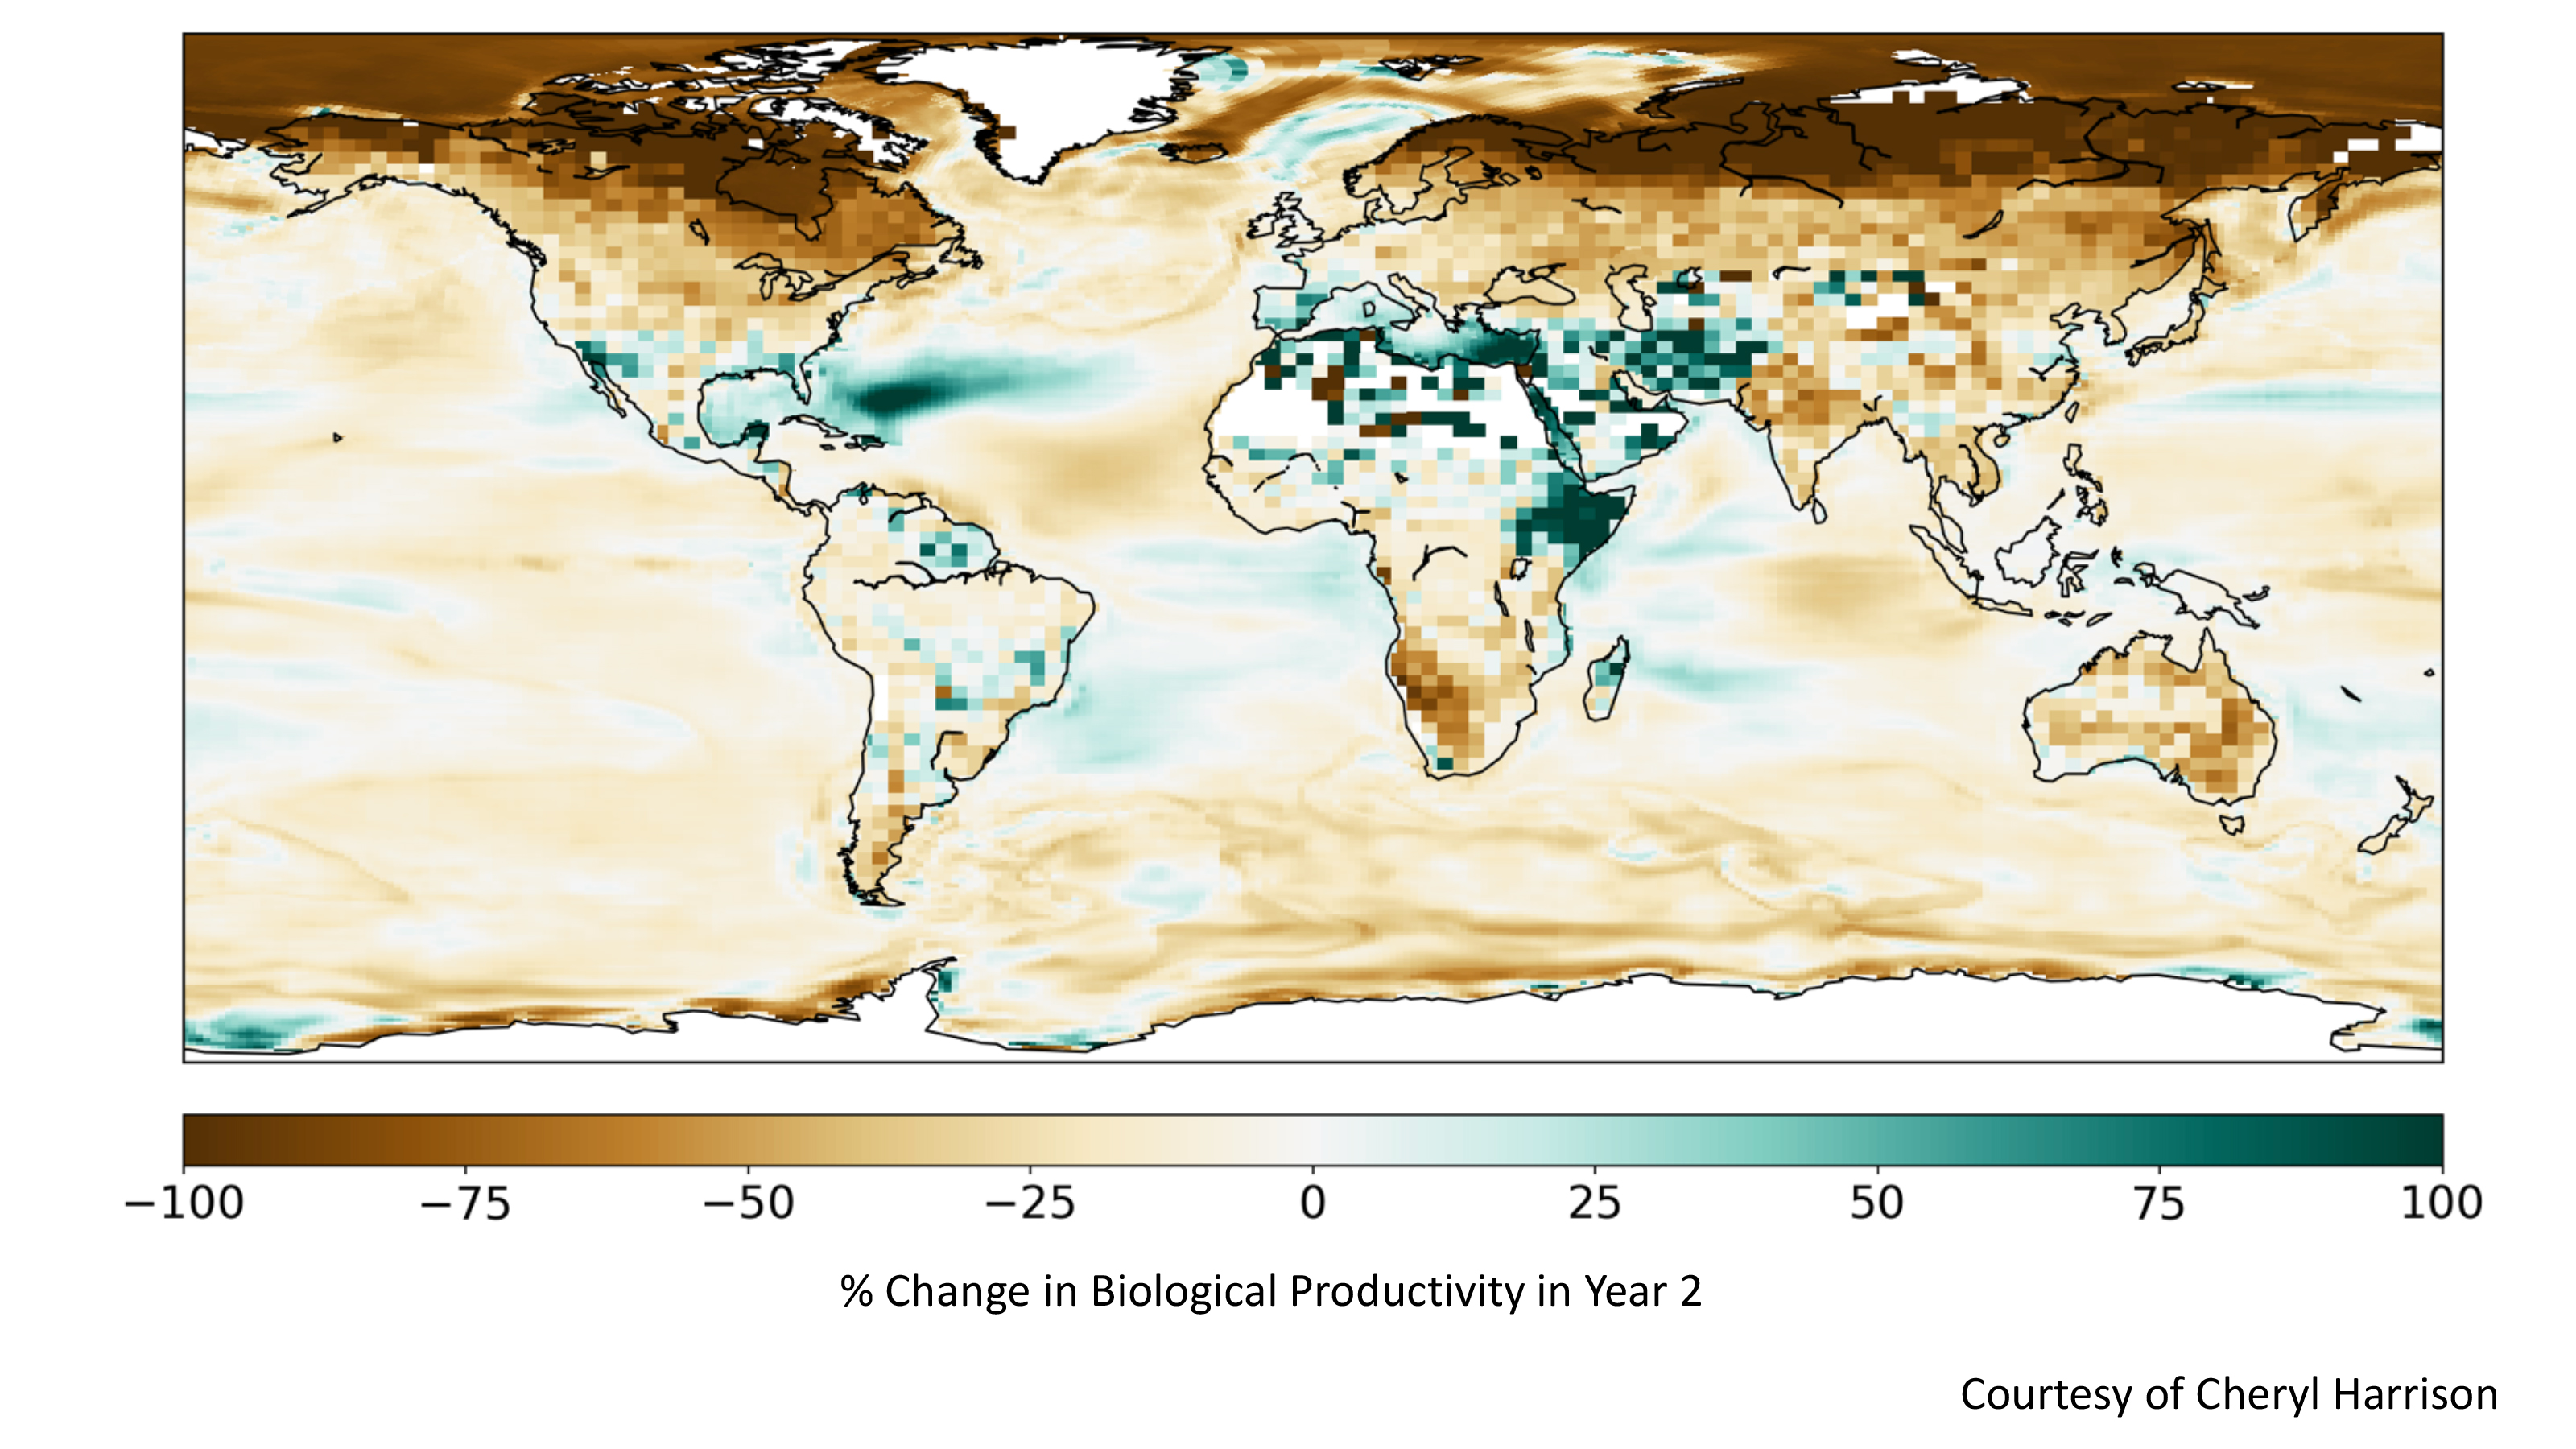 Simulated drop in plant growth due to sunlight, temperature, and precipitation changes.